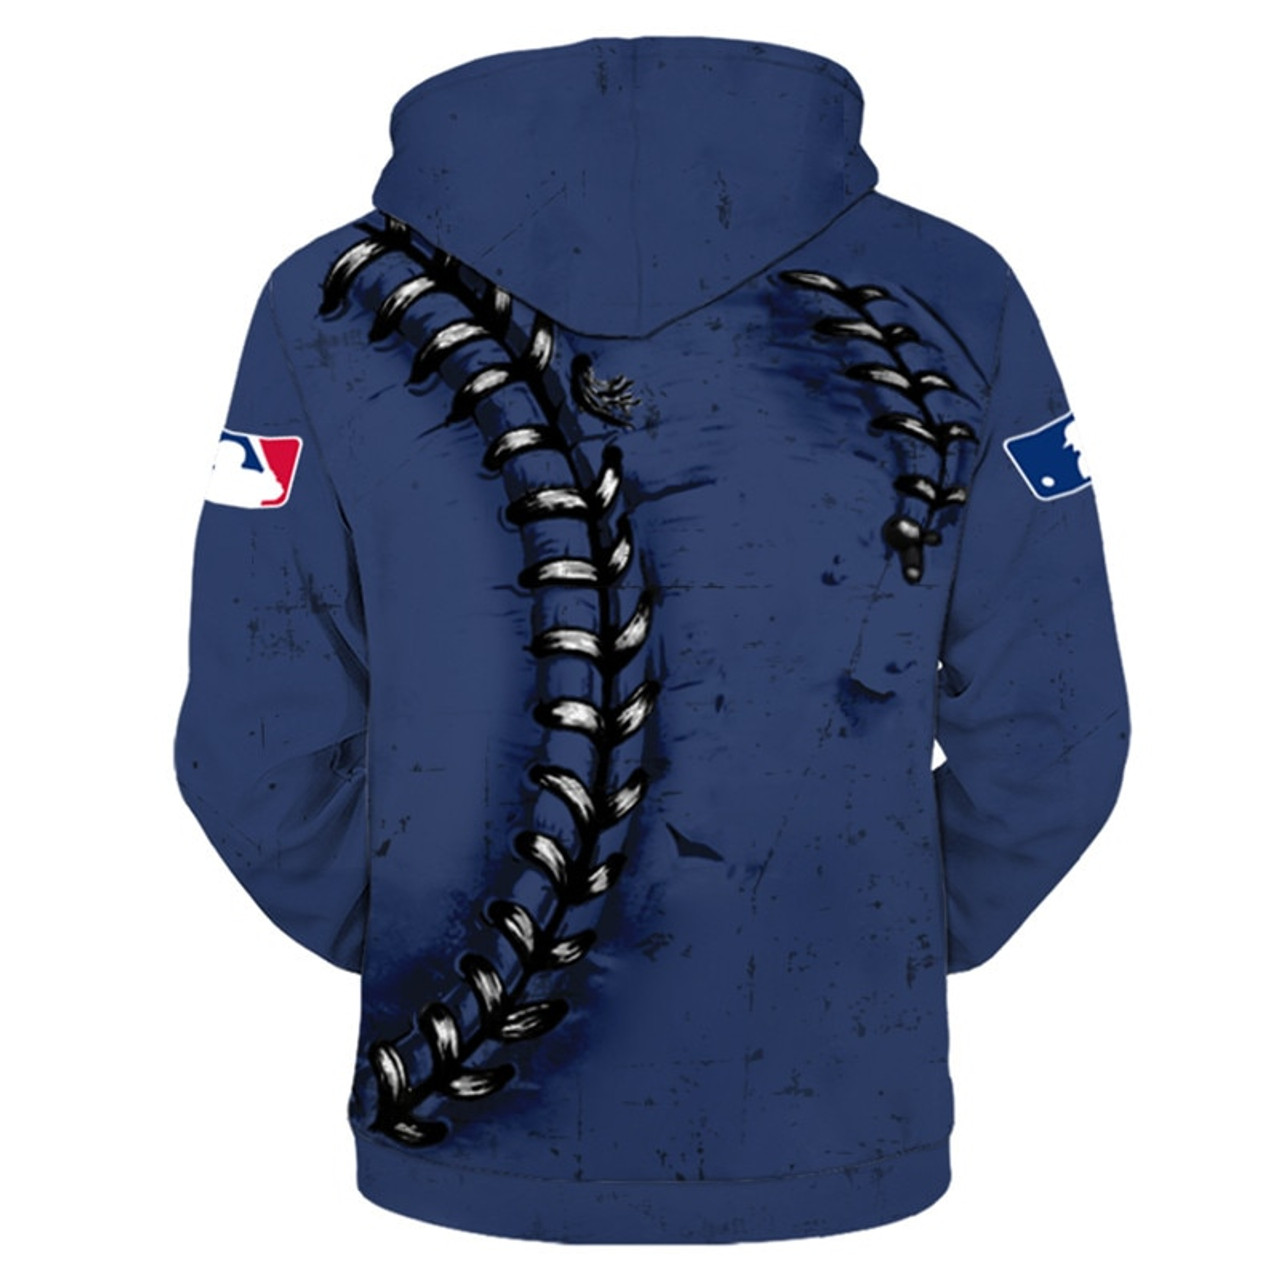 **(OFFICIALLY-LICENSED-M.L.B. NEW-YORK-YANKEES-TEAM-HOODIES/NICE-CUSTOM-DETAILED-3D-GRAPHIC-PRINTED/PREMIUM-ALL-OVER-DOUBLE-SIDED-PRINT/OFFICIAL-YANKEES-TEAM-COLORS & CLASSIC-YANKEES-BASEBALL-3D-STITCHING-GRAPHICS/PREMIUM-PULLOVER-POCKET-HOODIES)**